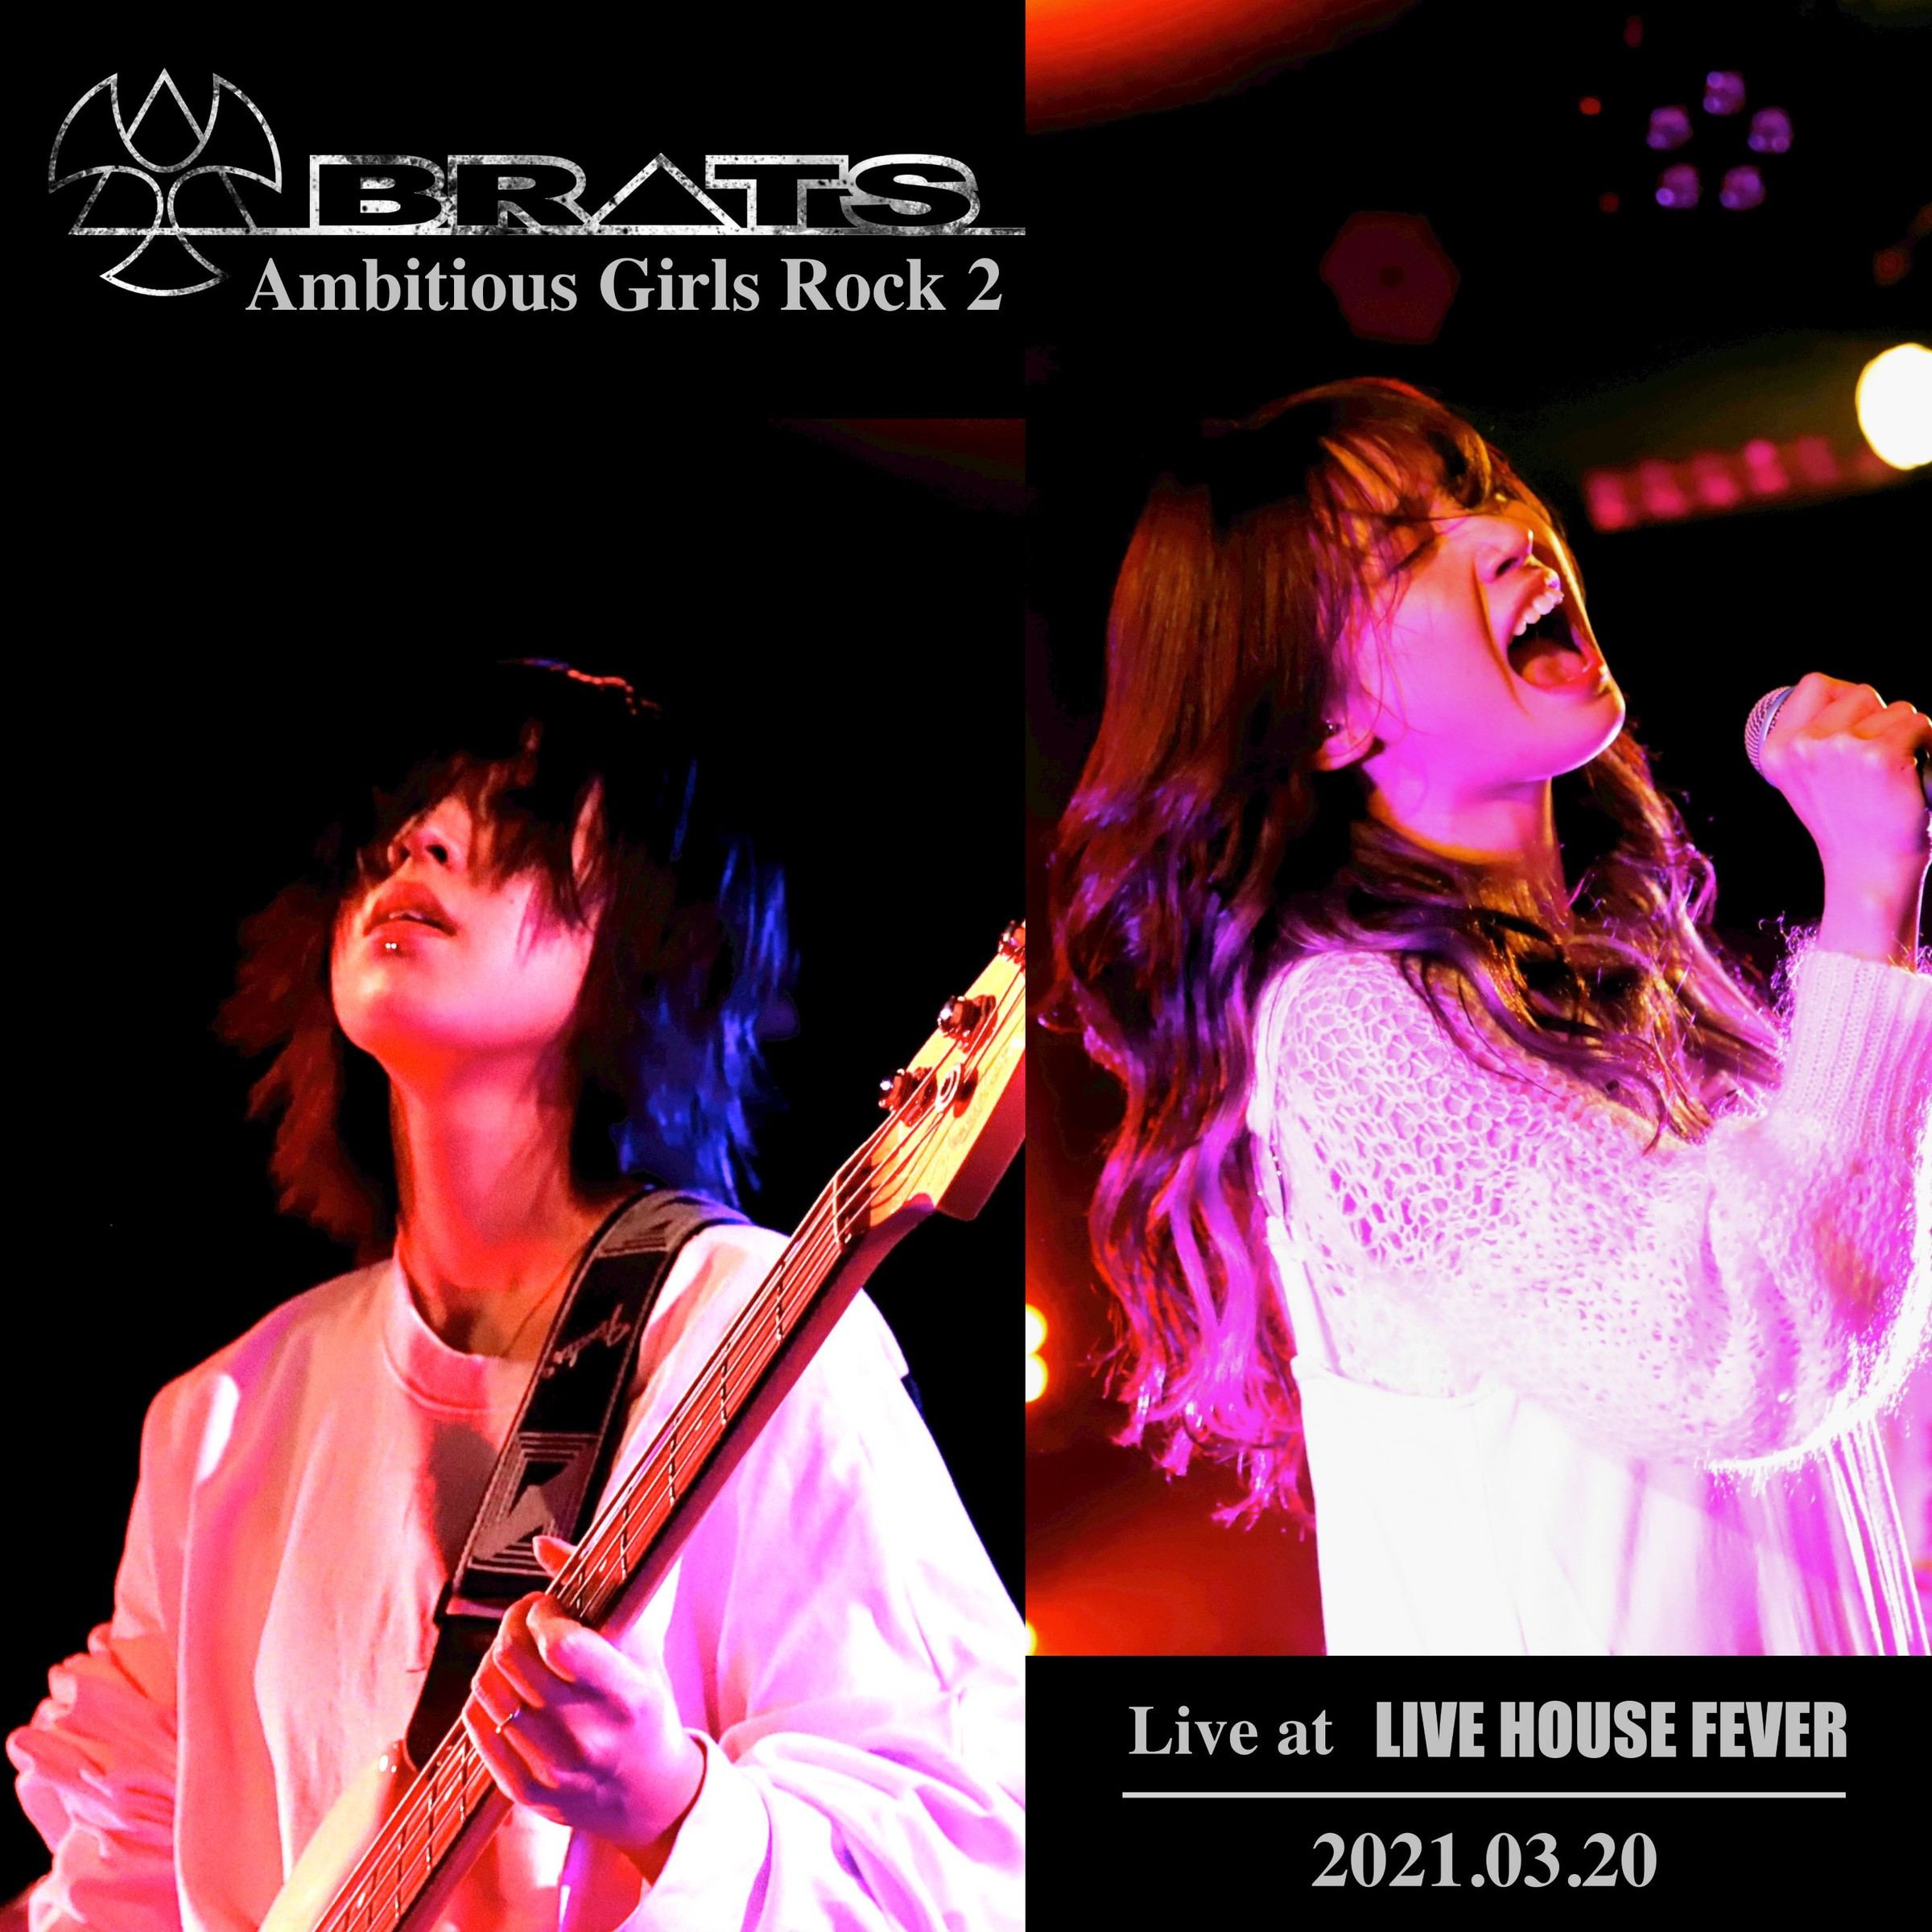 BRATS – Ambitious Girls Rock 2 (Live at LIVE HOUSE FEVER 2021.03.20) [FLAC / WEB] [2021.06.04]